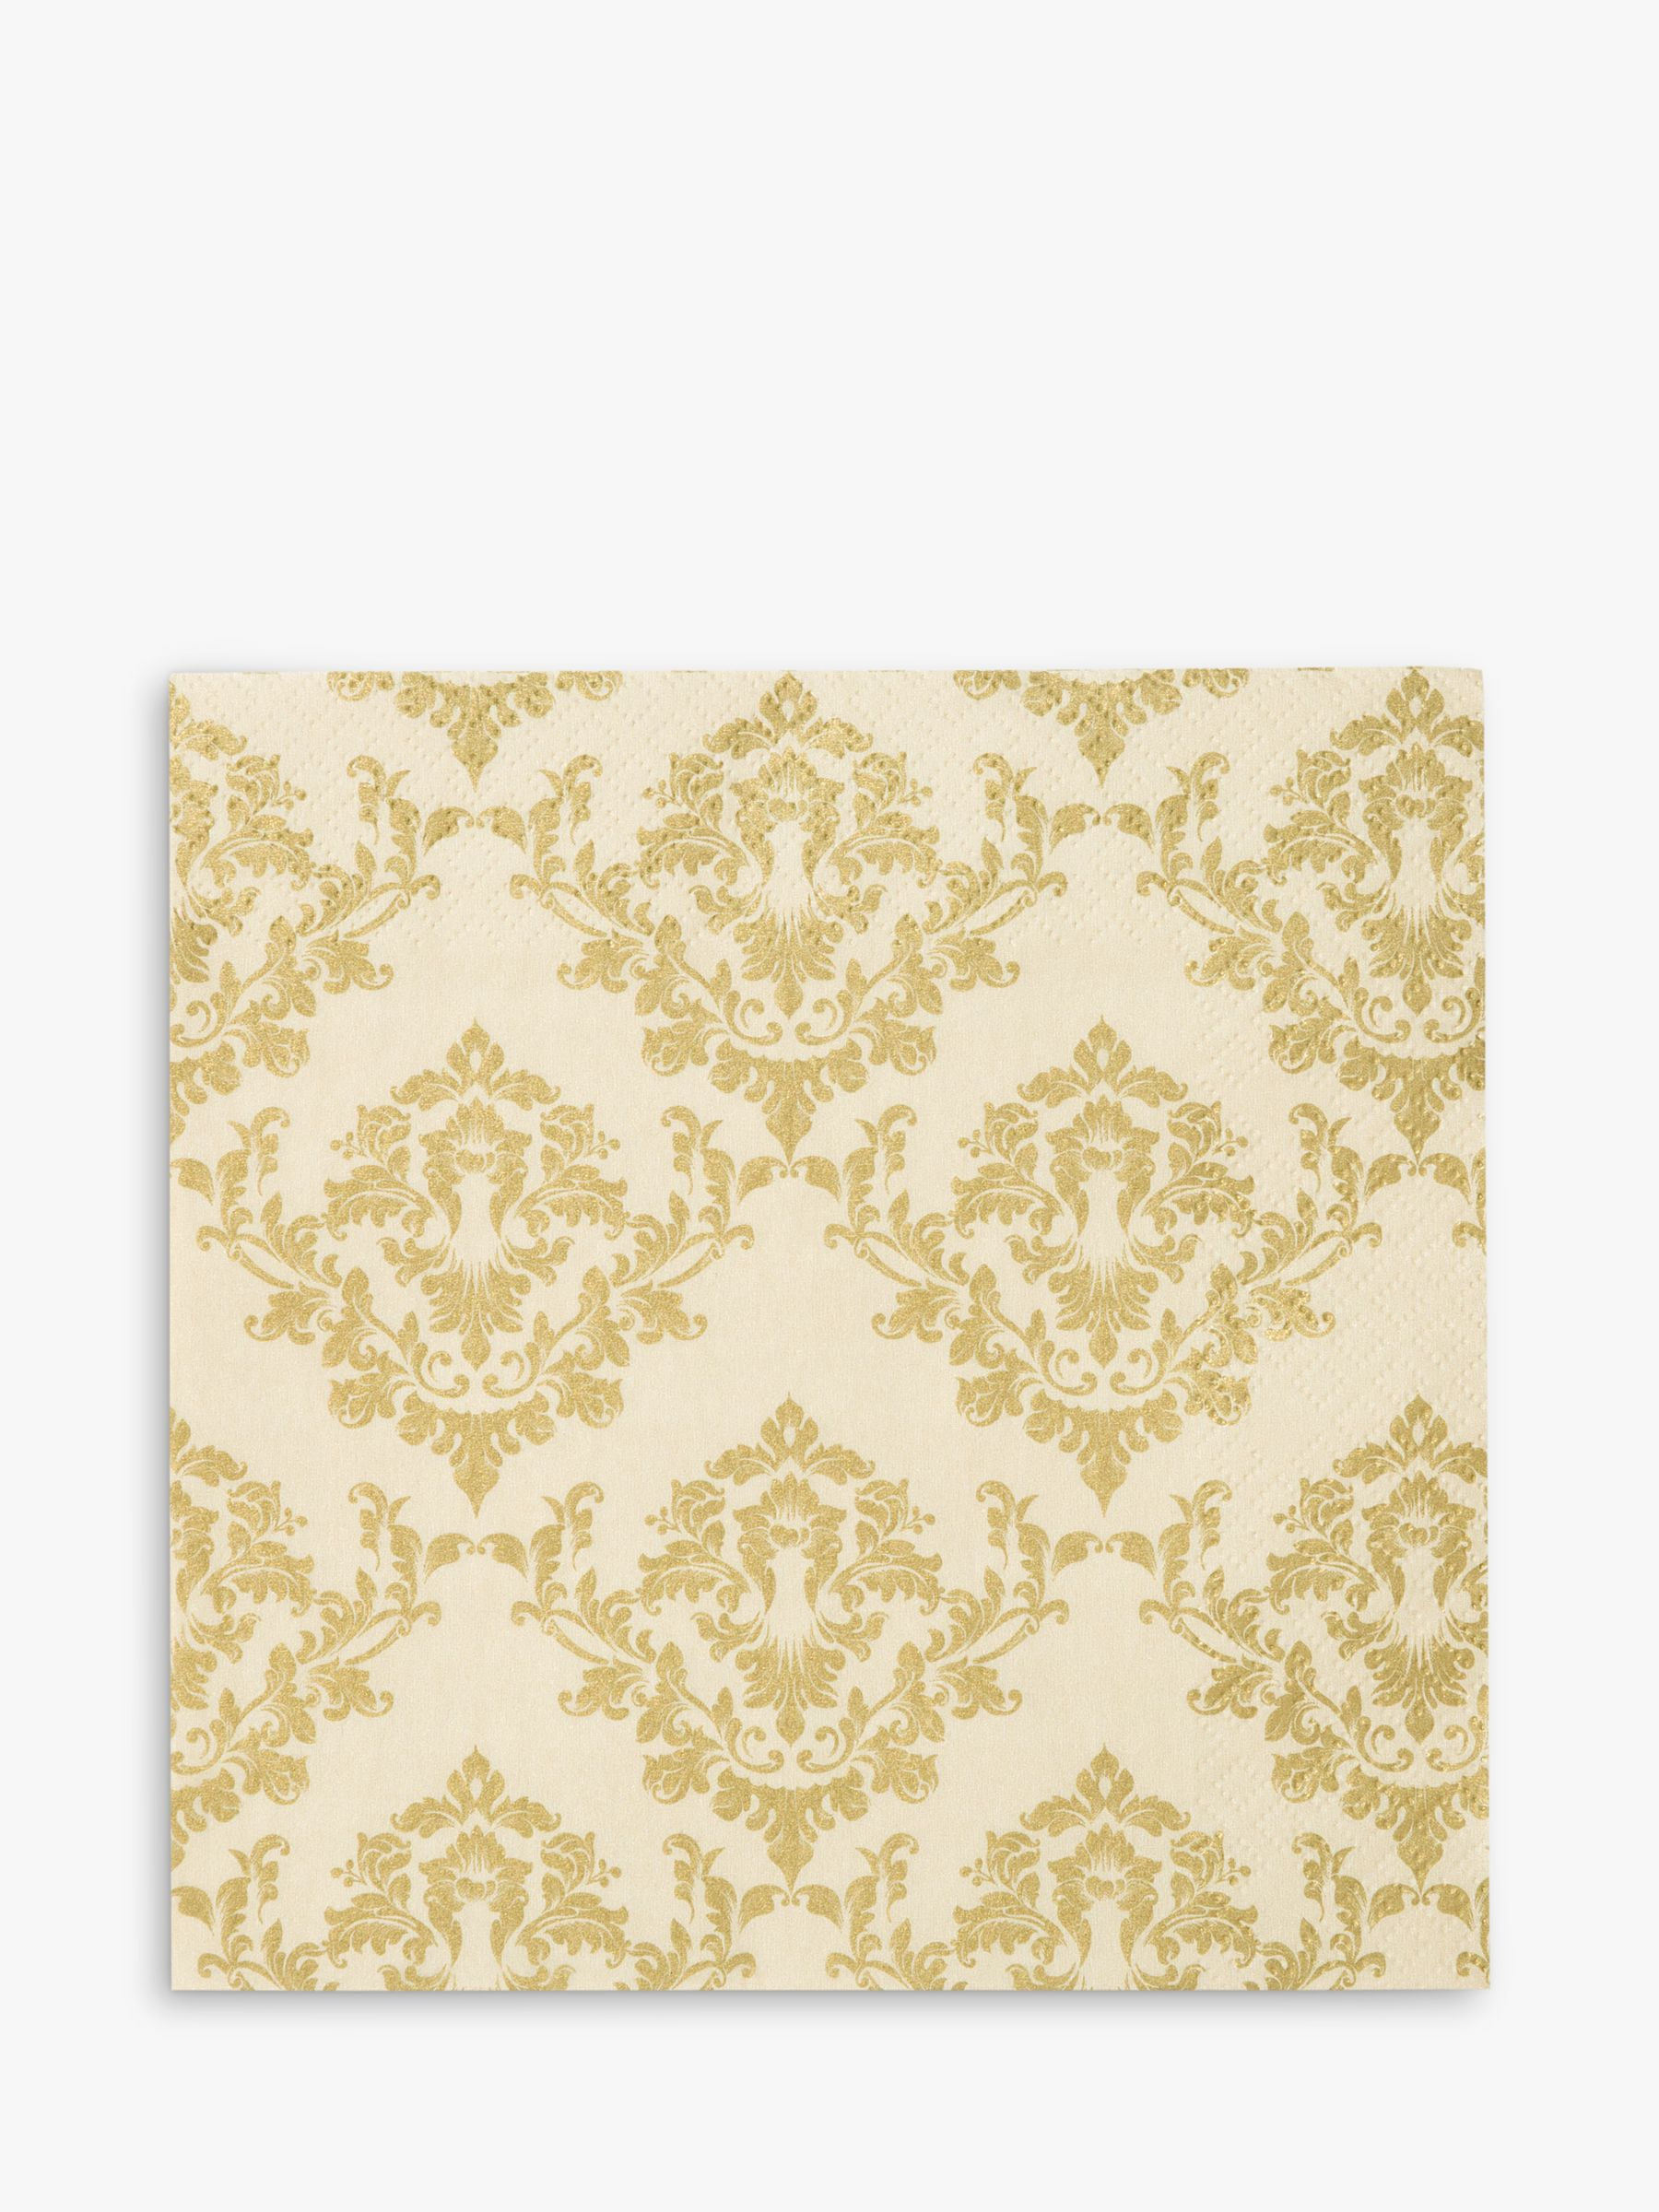 Talking Tables Talking Tables Gold Damask Disposable Napkins, Pack of 20